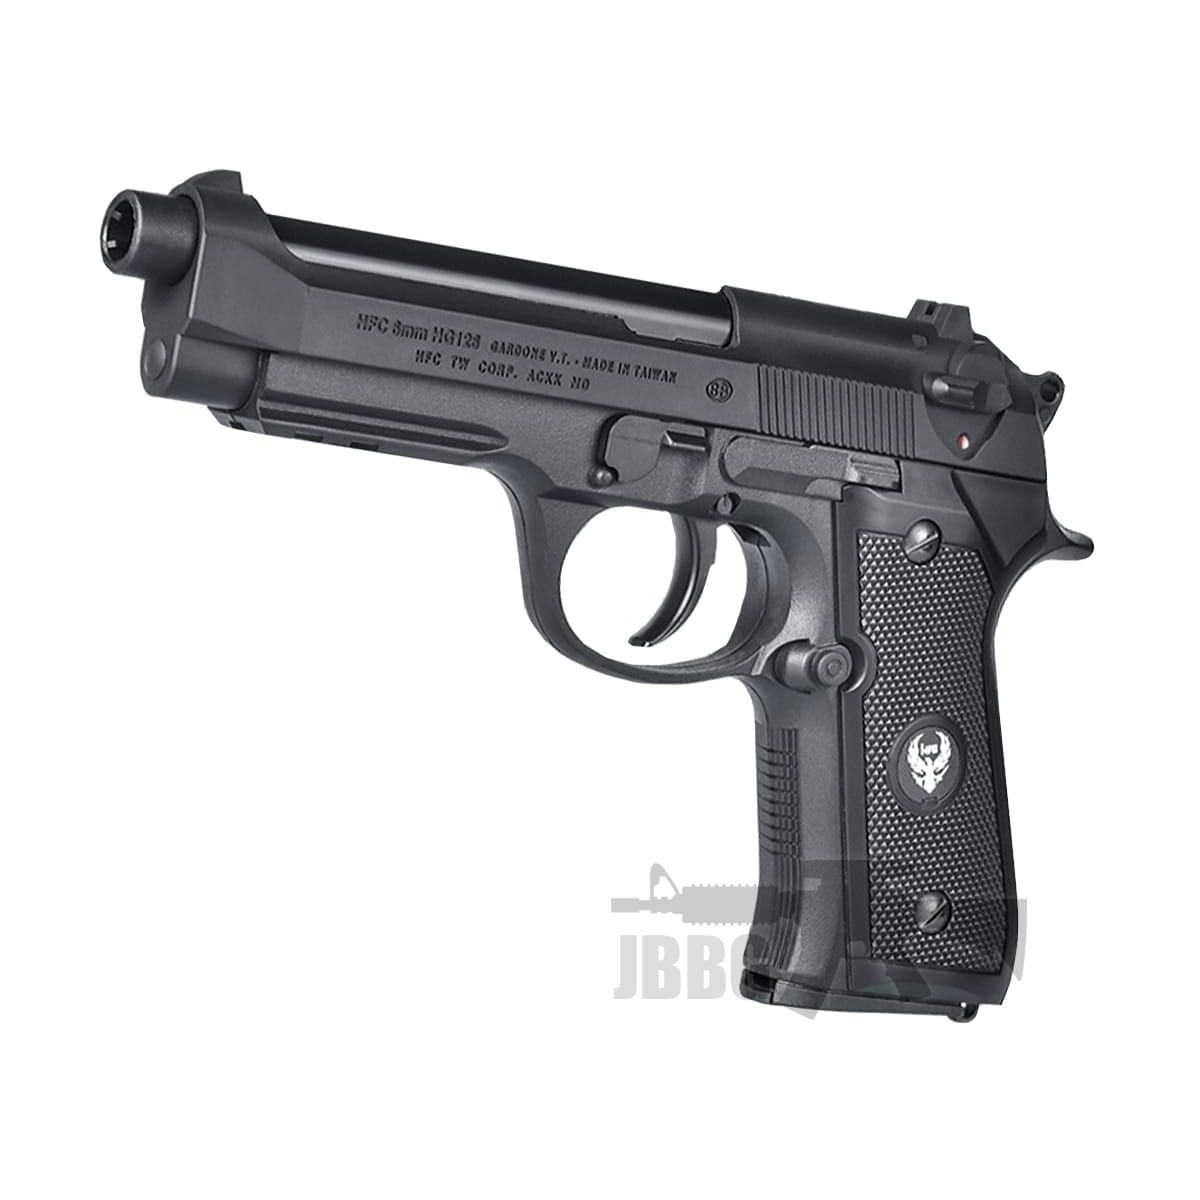 HG126 ABS M9 GAS AIRSOFT PISTOL